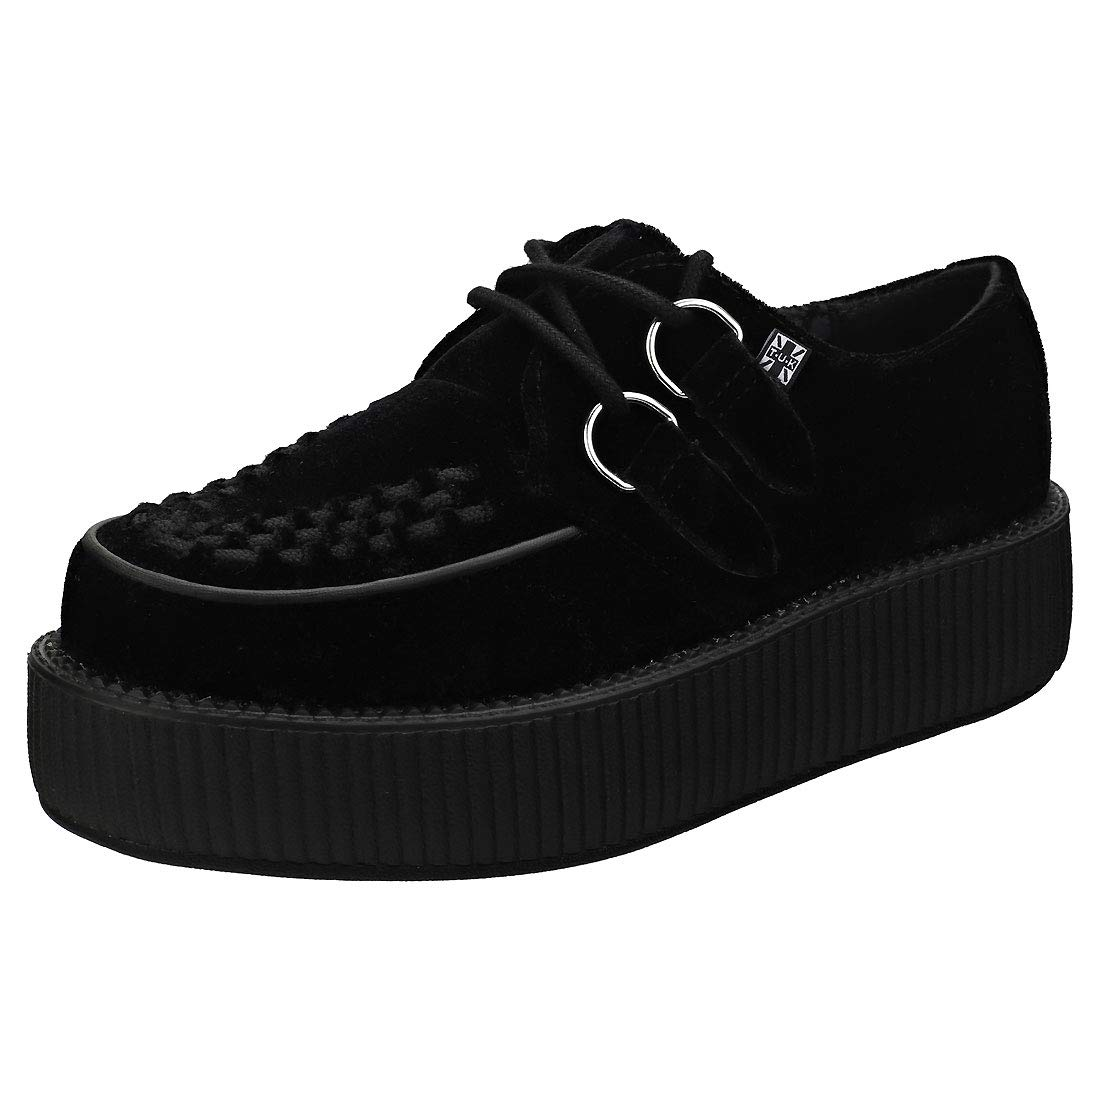 T.U.K Shoes Mens /& Womens Viva Hi Sole Creeper Black Suede With Black Interlace